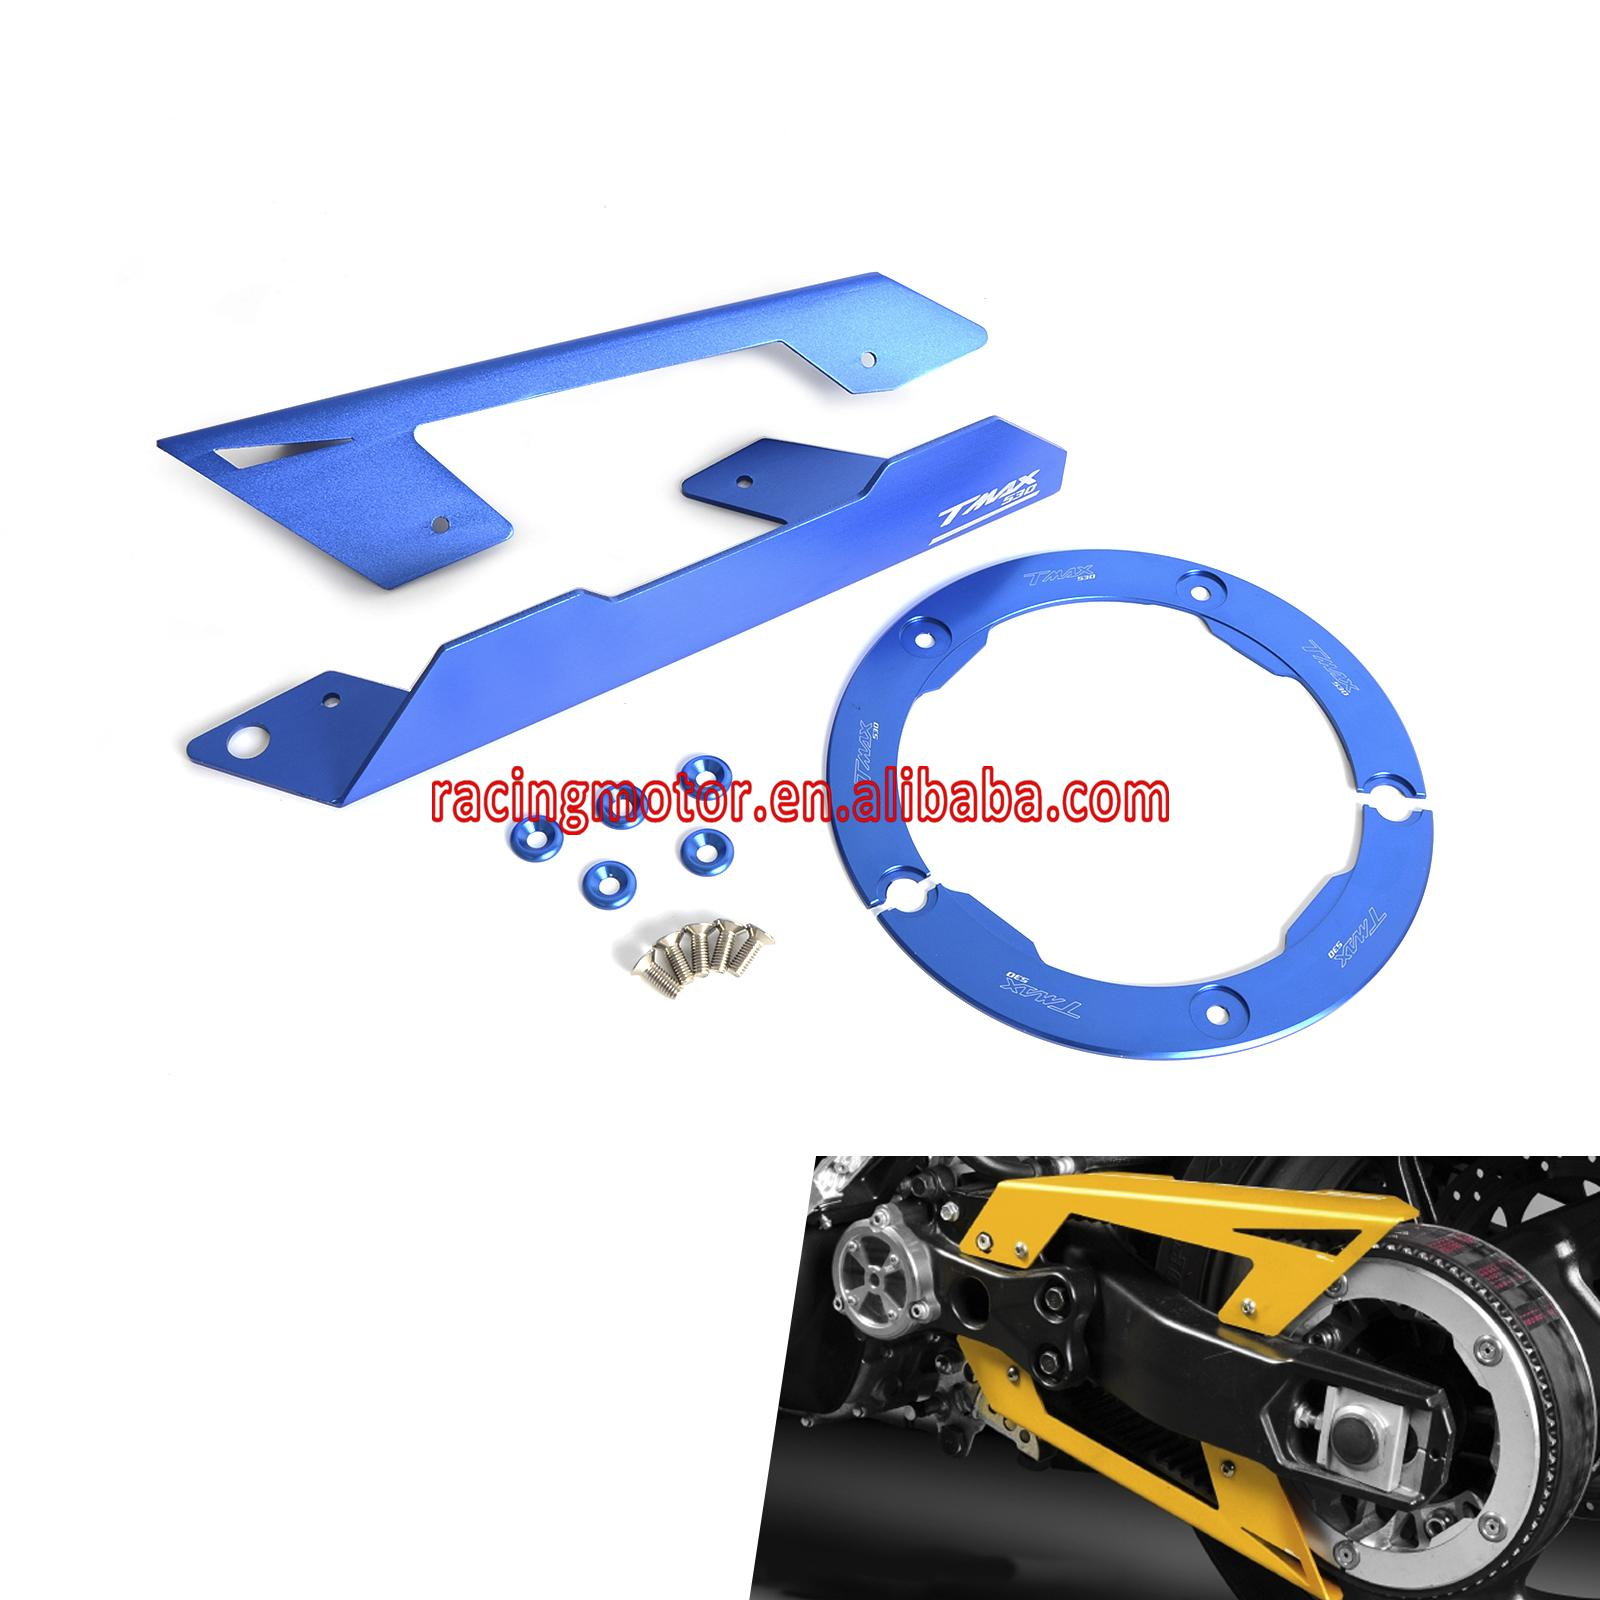 ФОТО Chain Protector & Guard Transmission Belt Pulley Cover For YAMAHA TMAX530  2012 2013 2014 2015